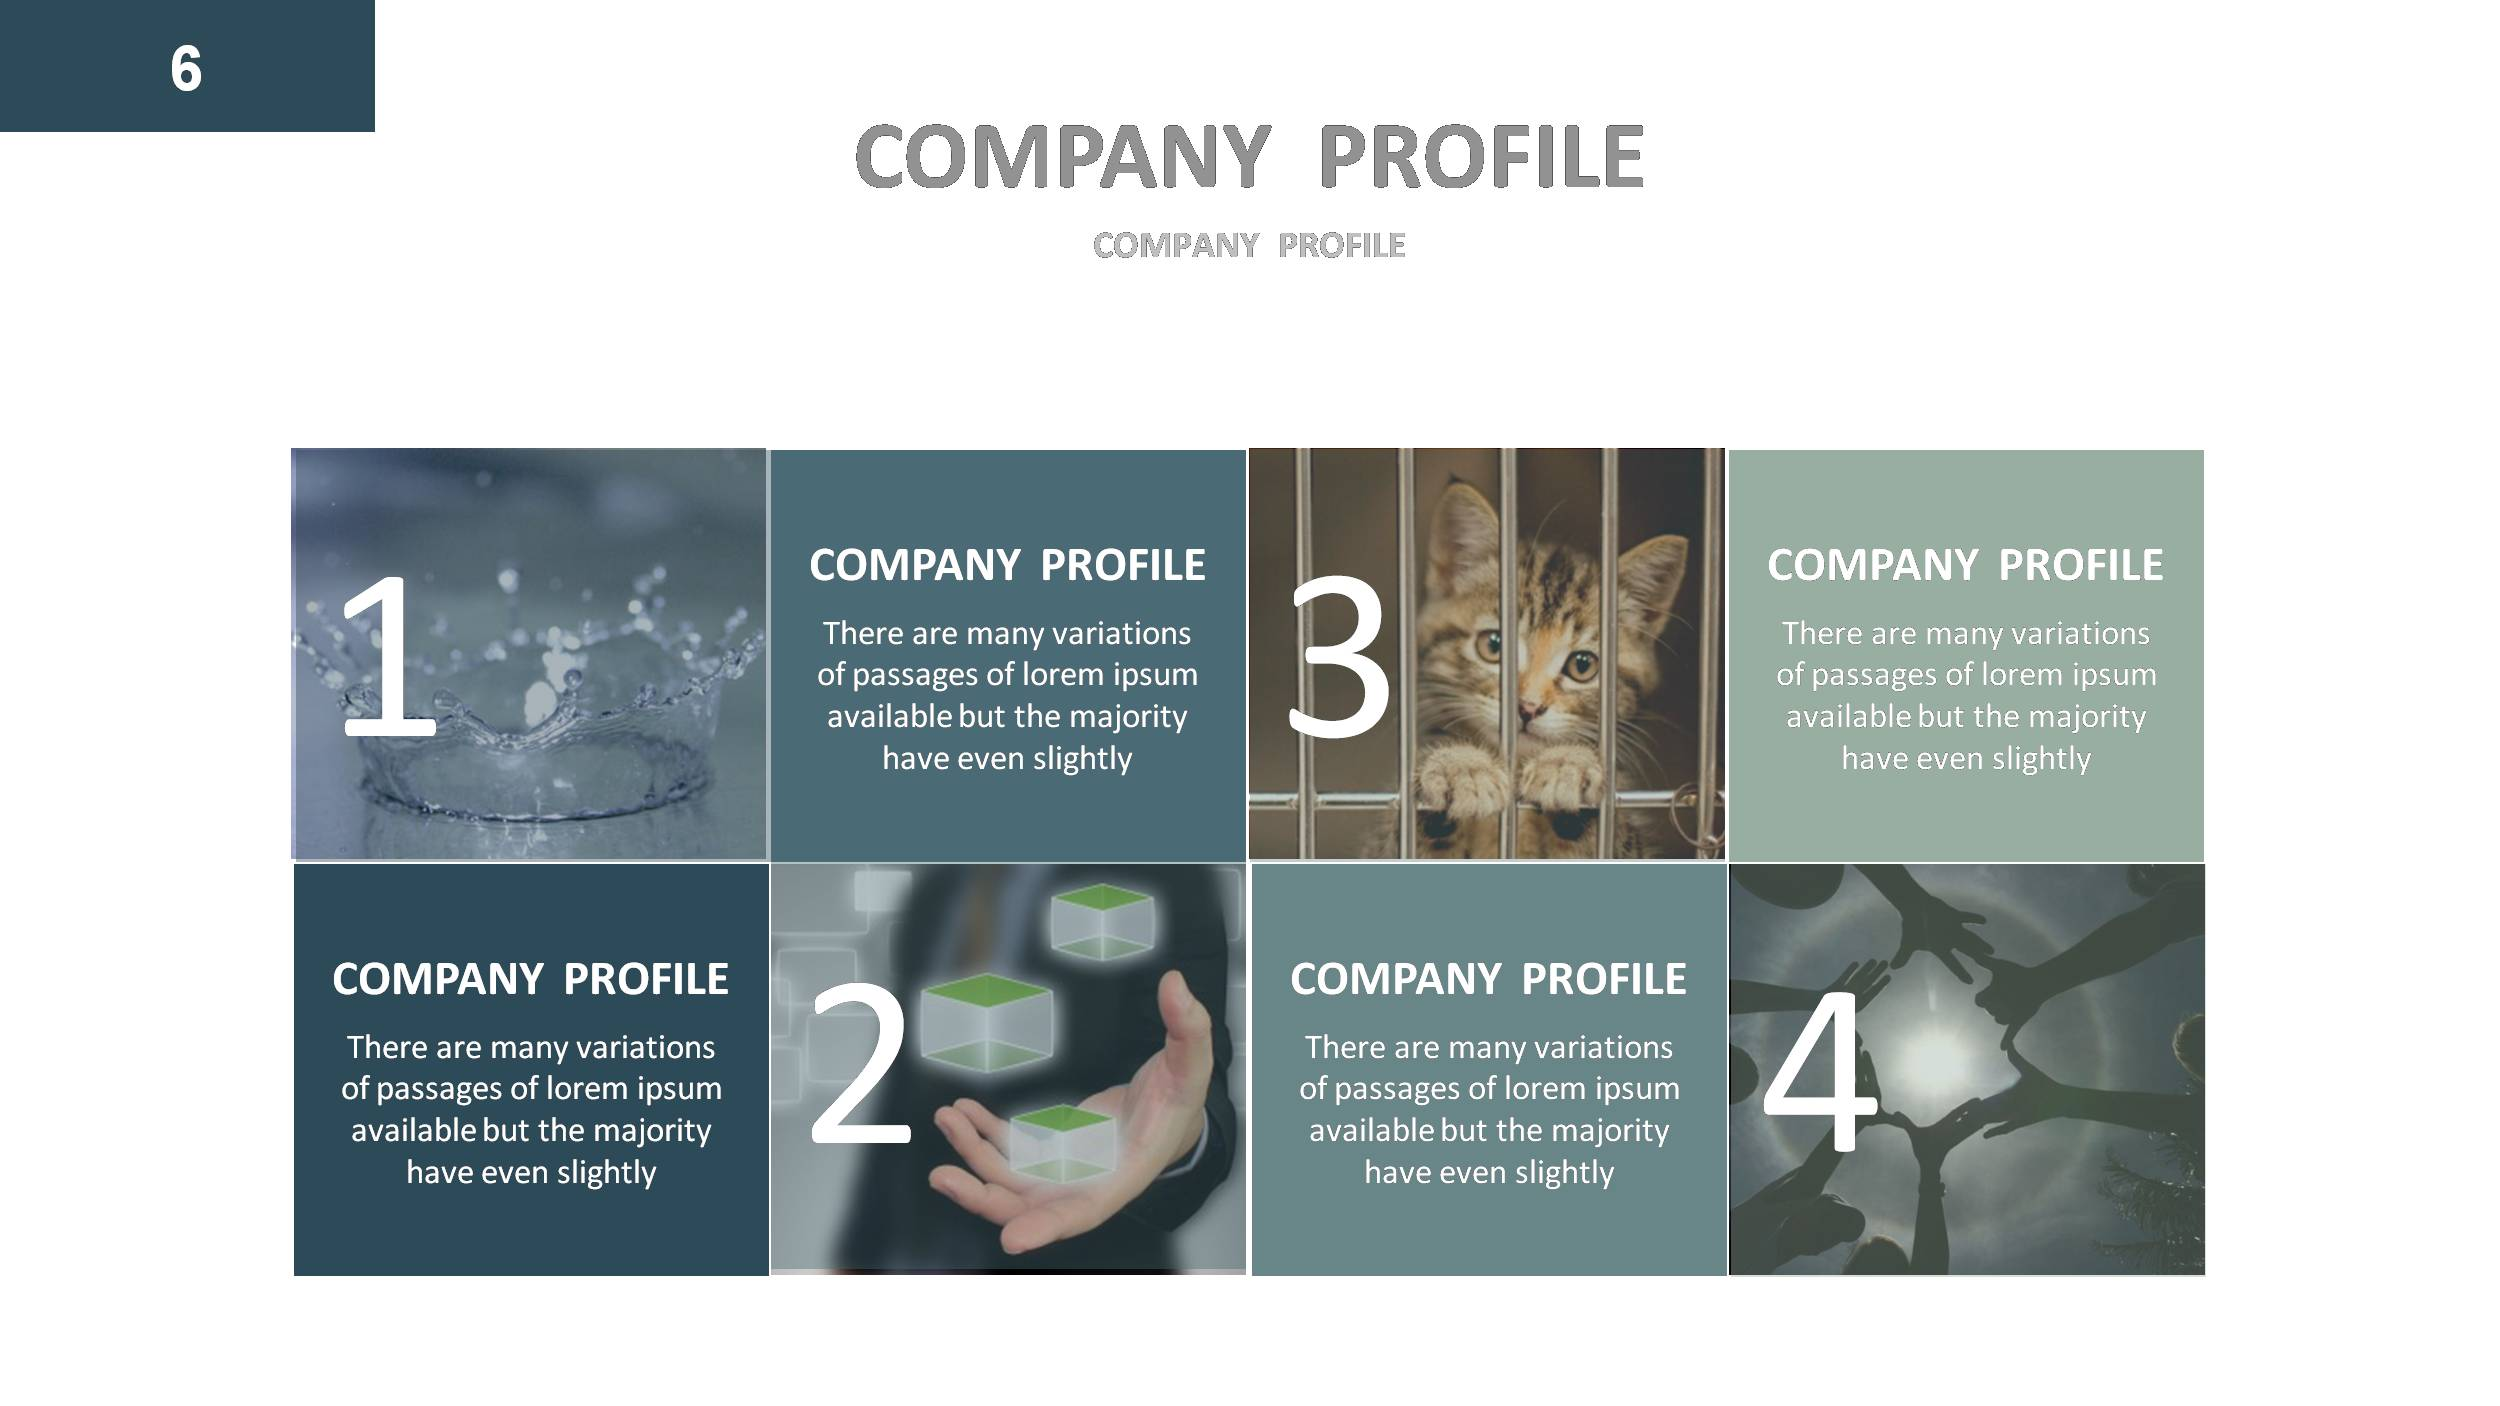 company profile after effects templates free download - company profile powerpoint presentation template by